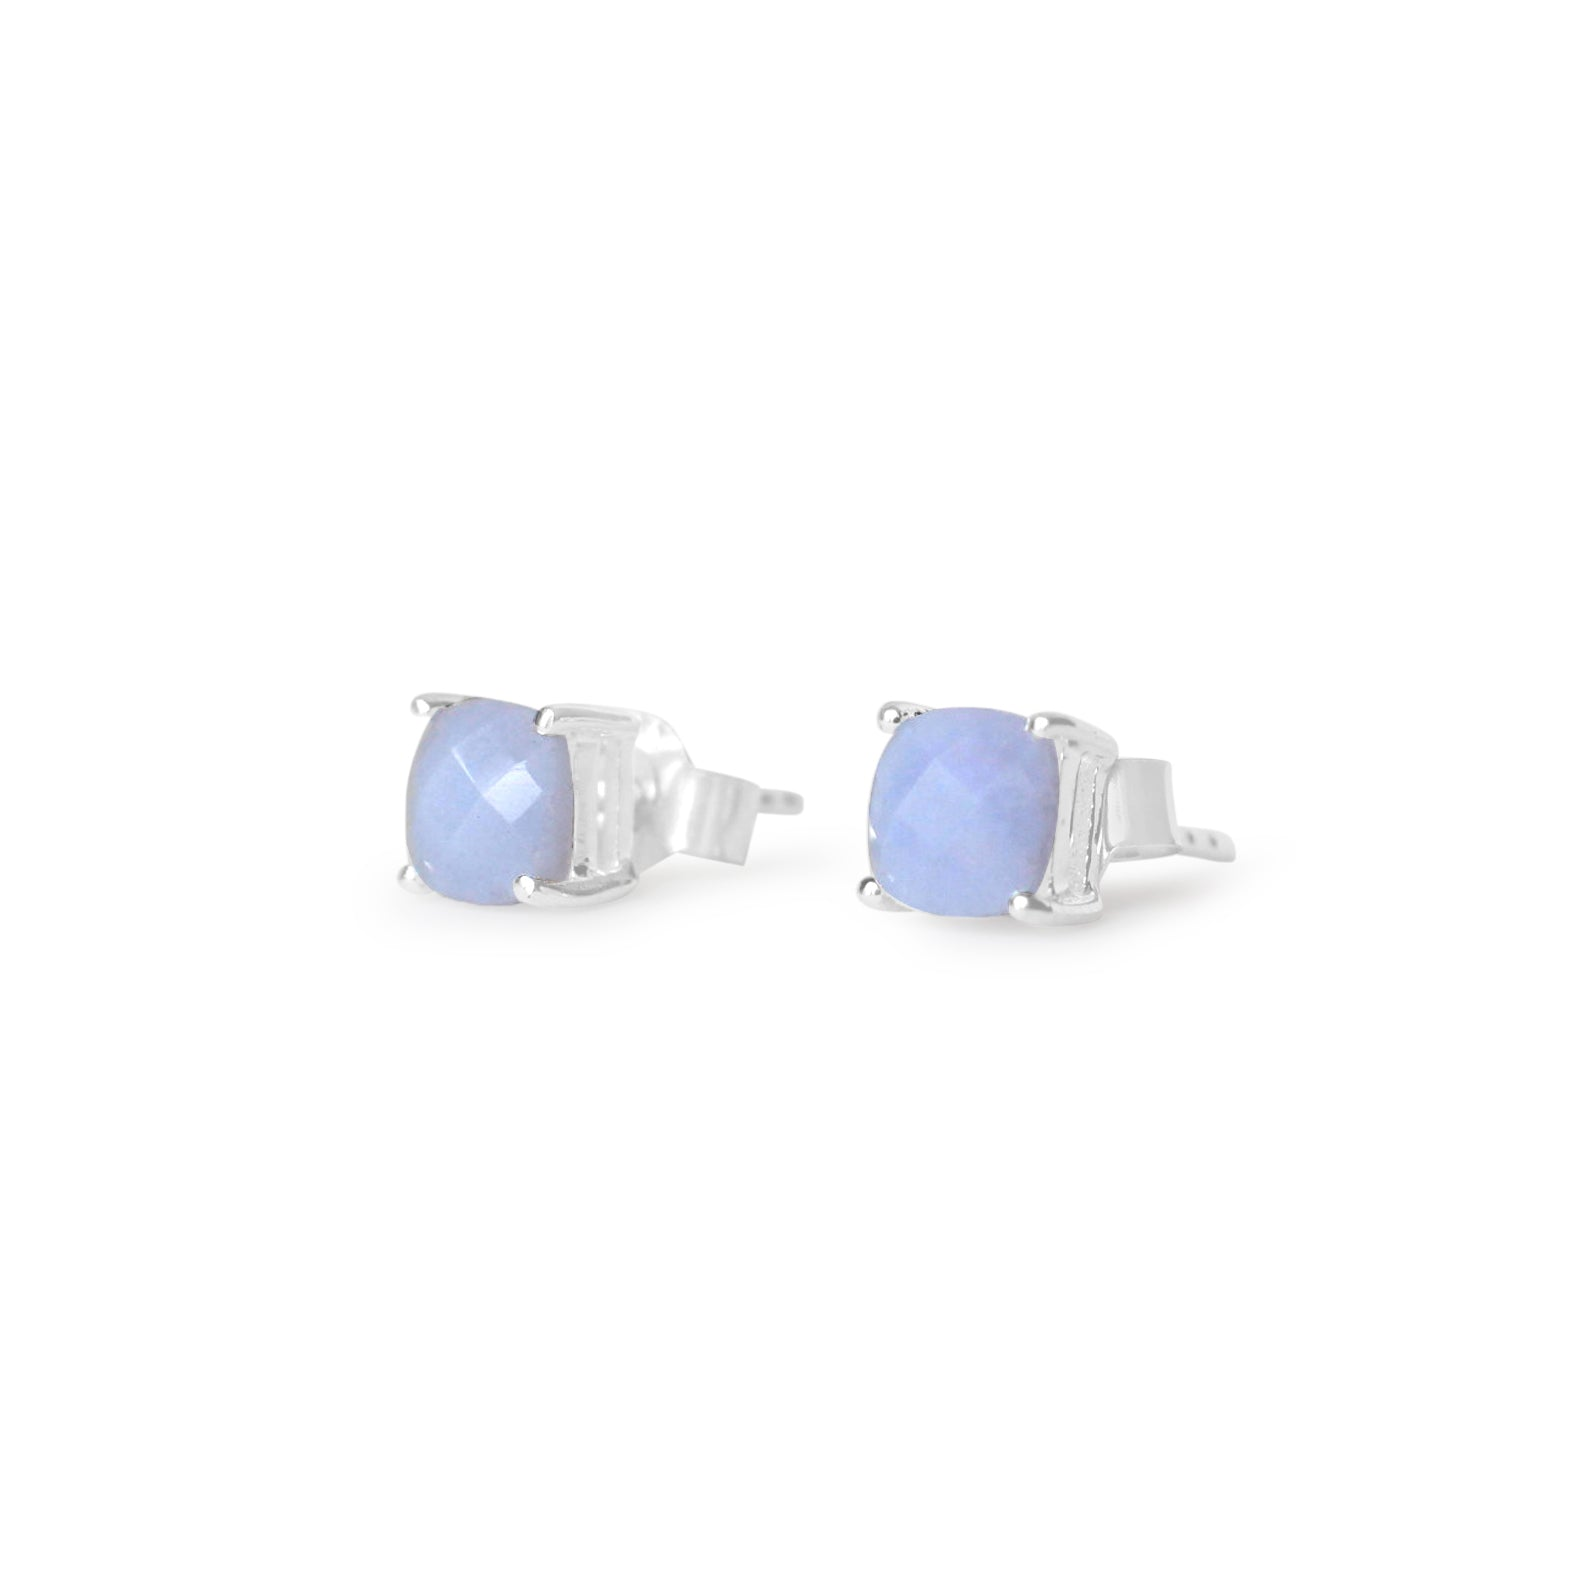 925 Silver Classic Series Earrings - Pamela Studs (Blue Lace Agate)